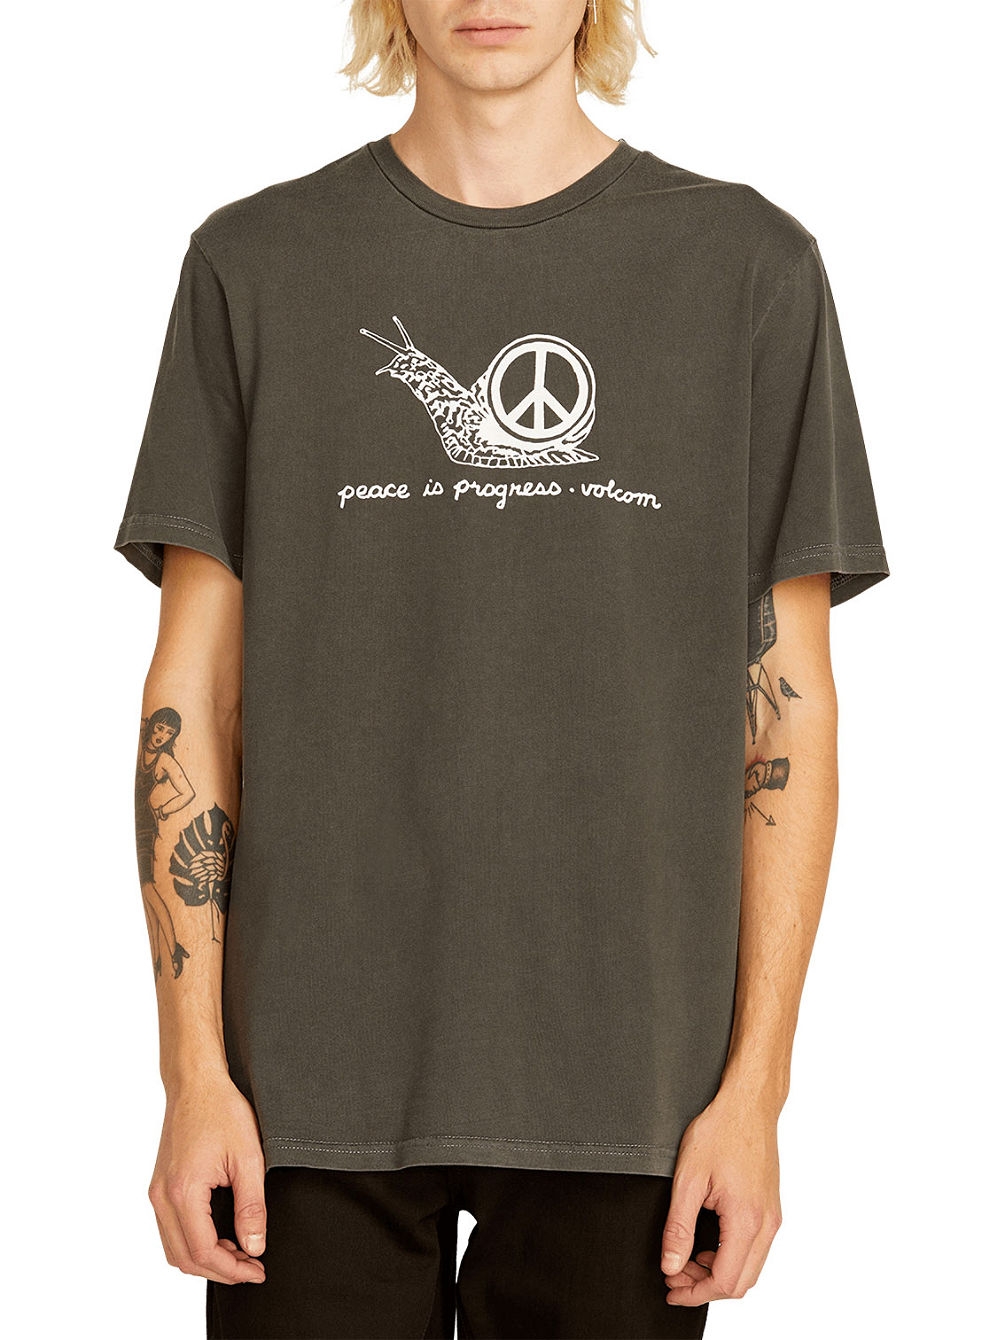 Peaceisprogress T-Shirt